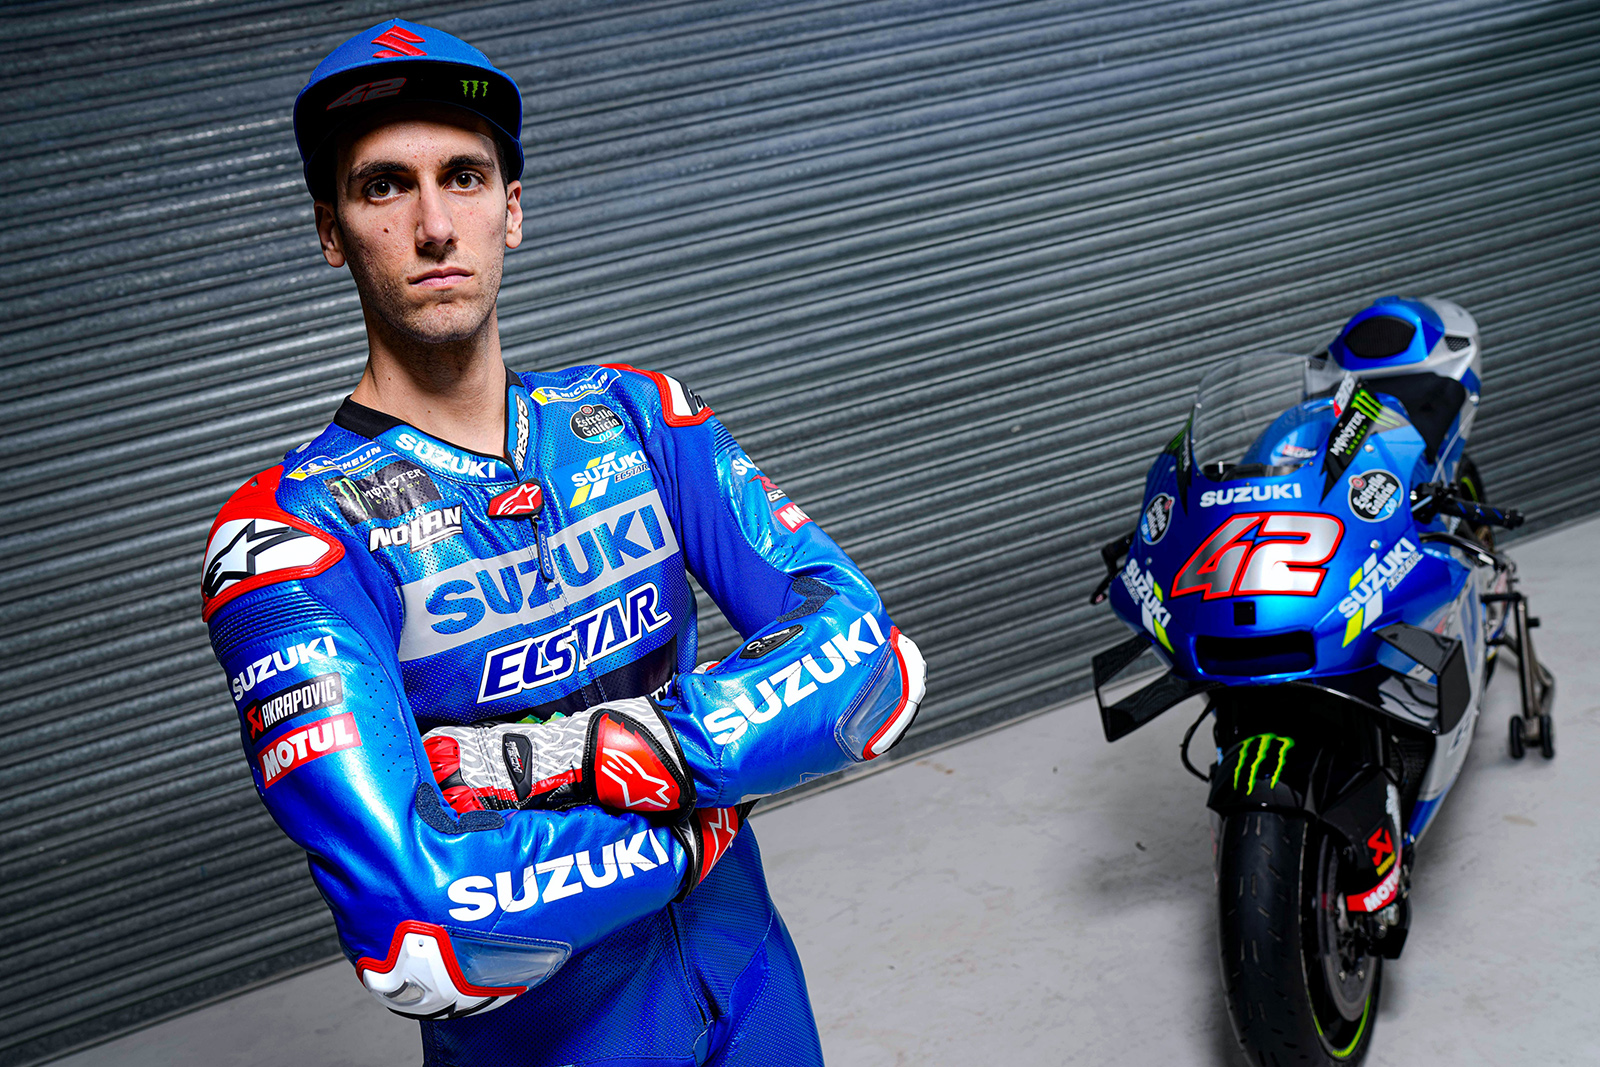 STARS ALIGN AS ESTRELLA GALICIA 0,0 AND SUZUKI PARTNER UP